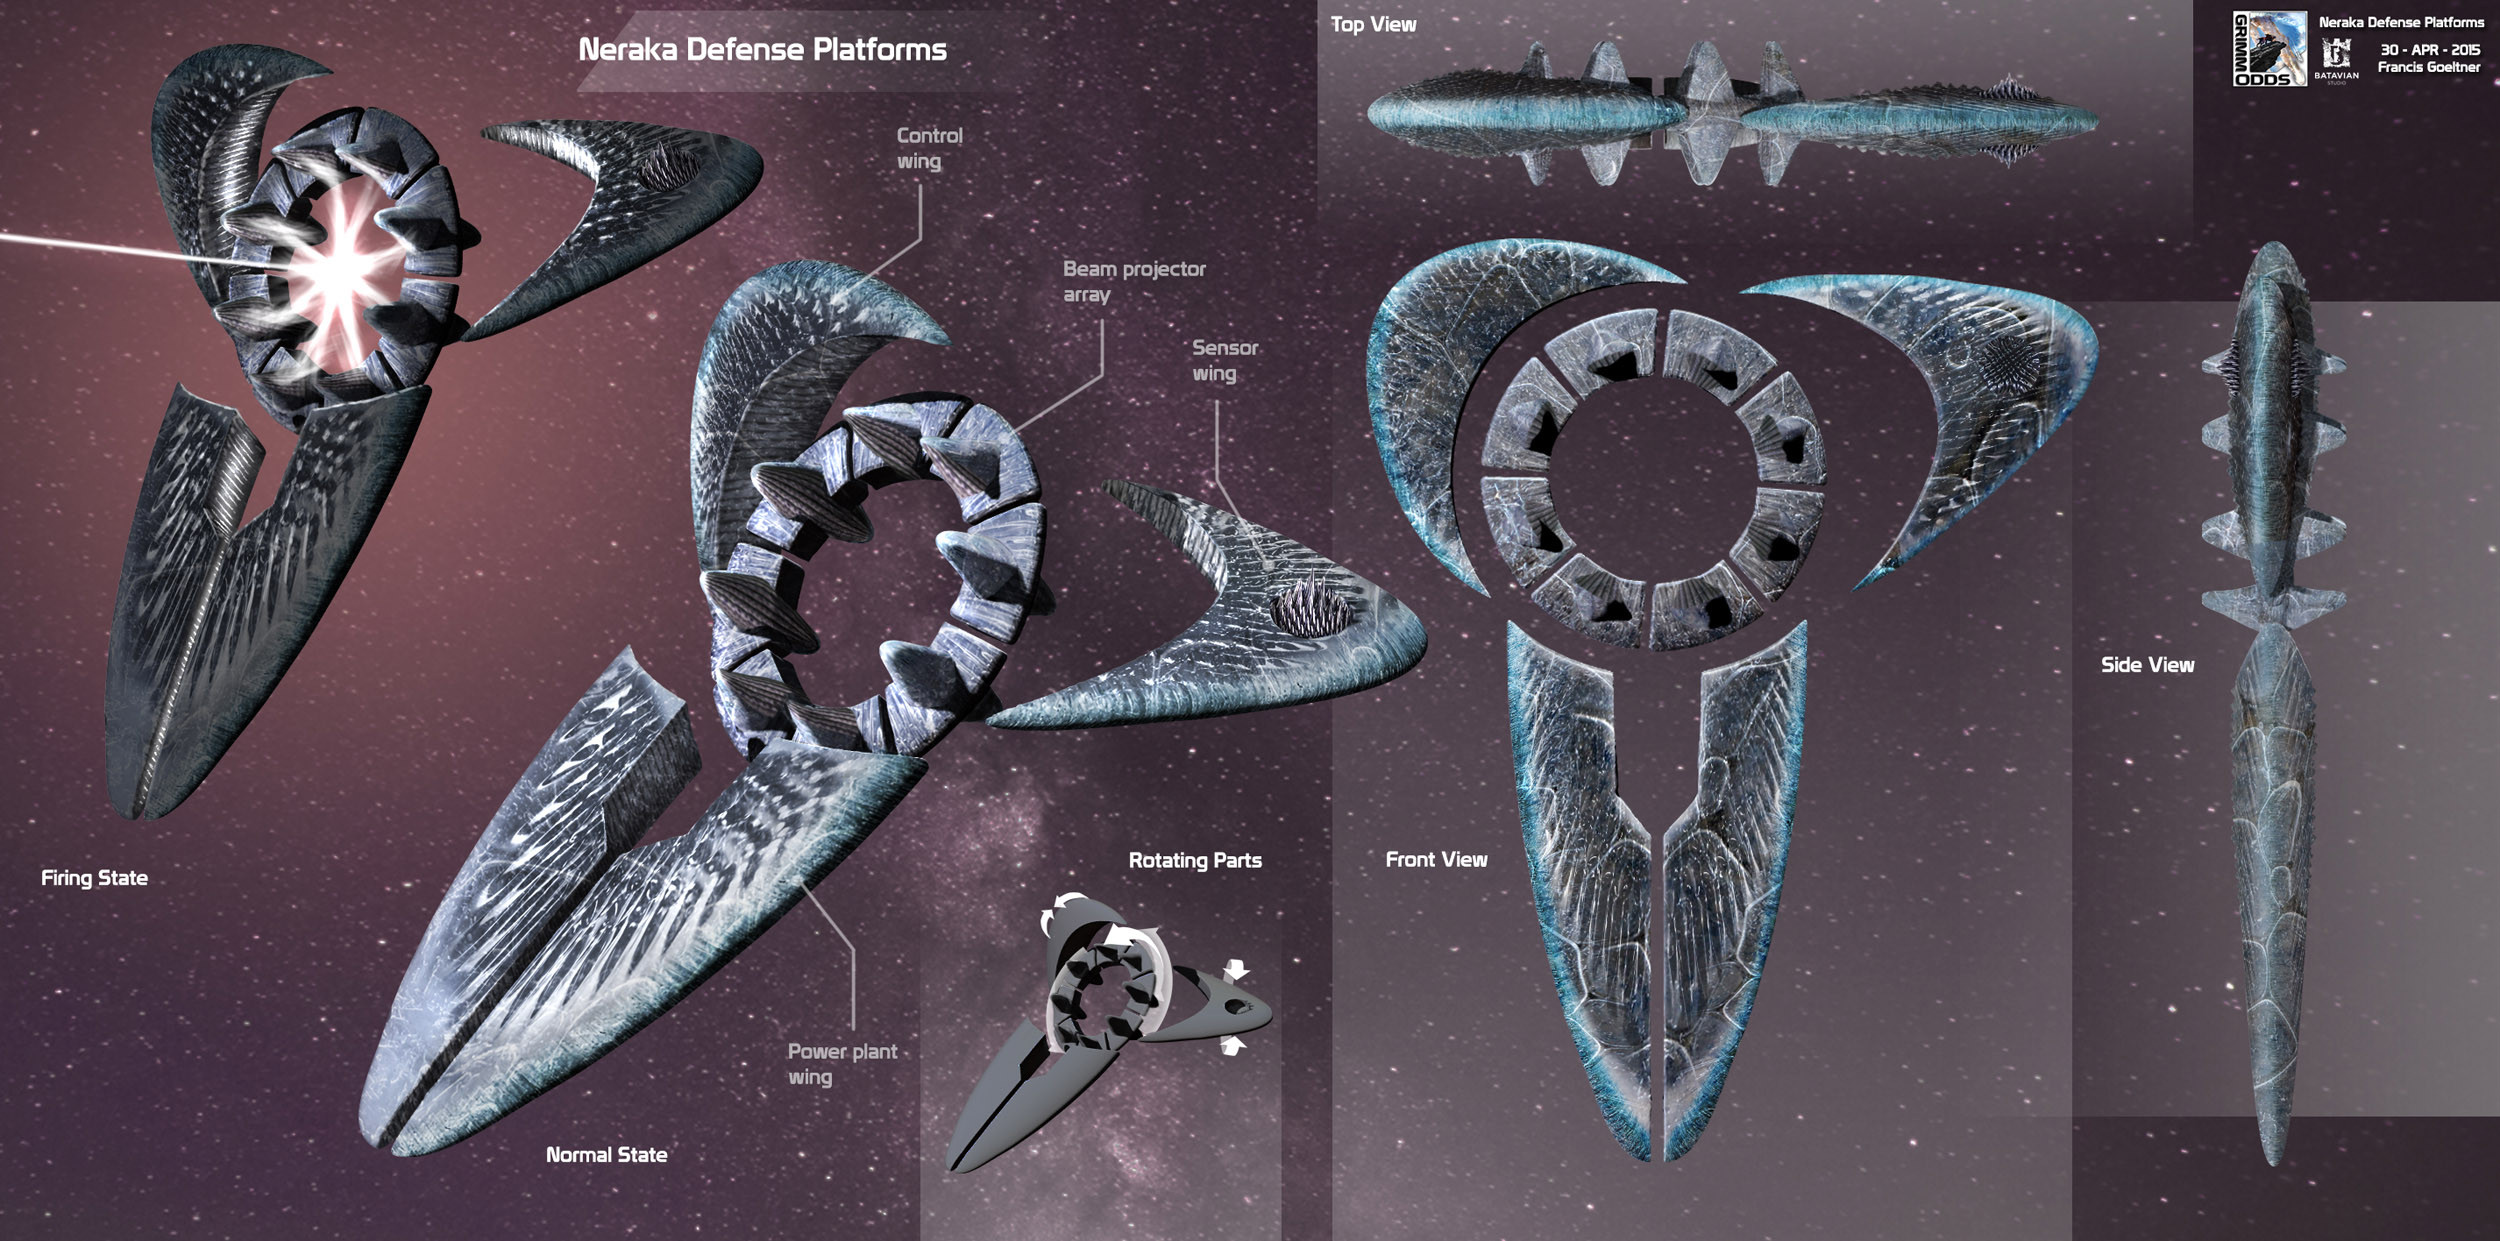 Grimm Odds - Alien Orbital Defense Platform - 3D Sketch